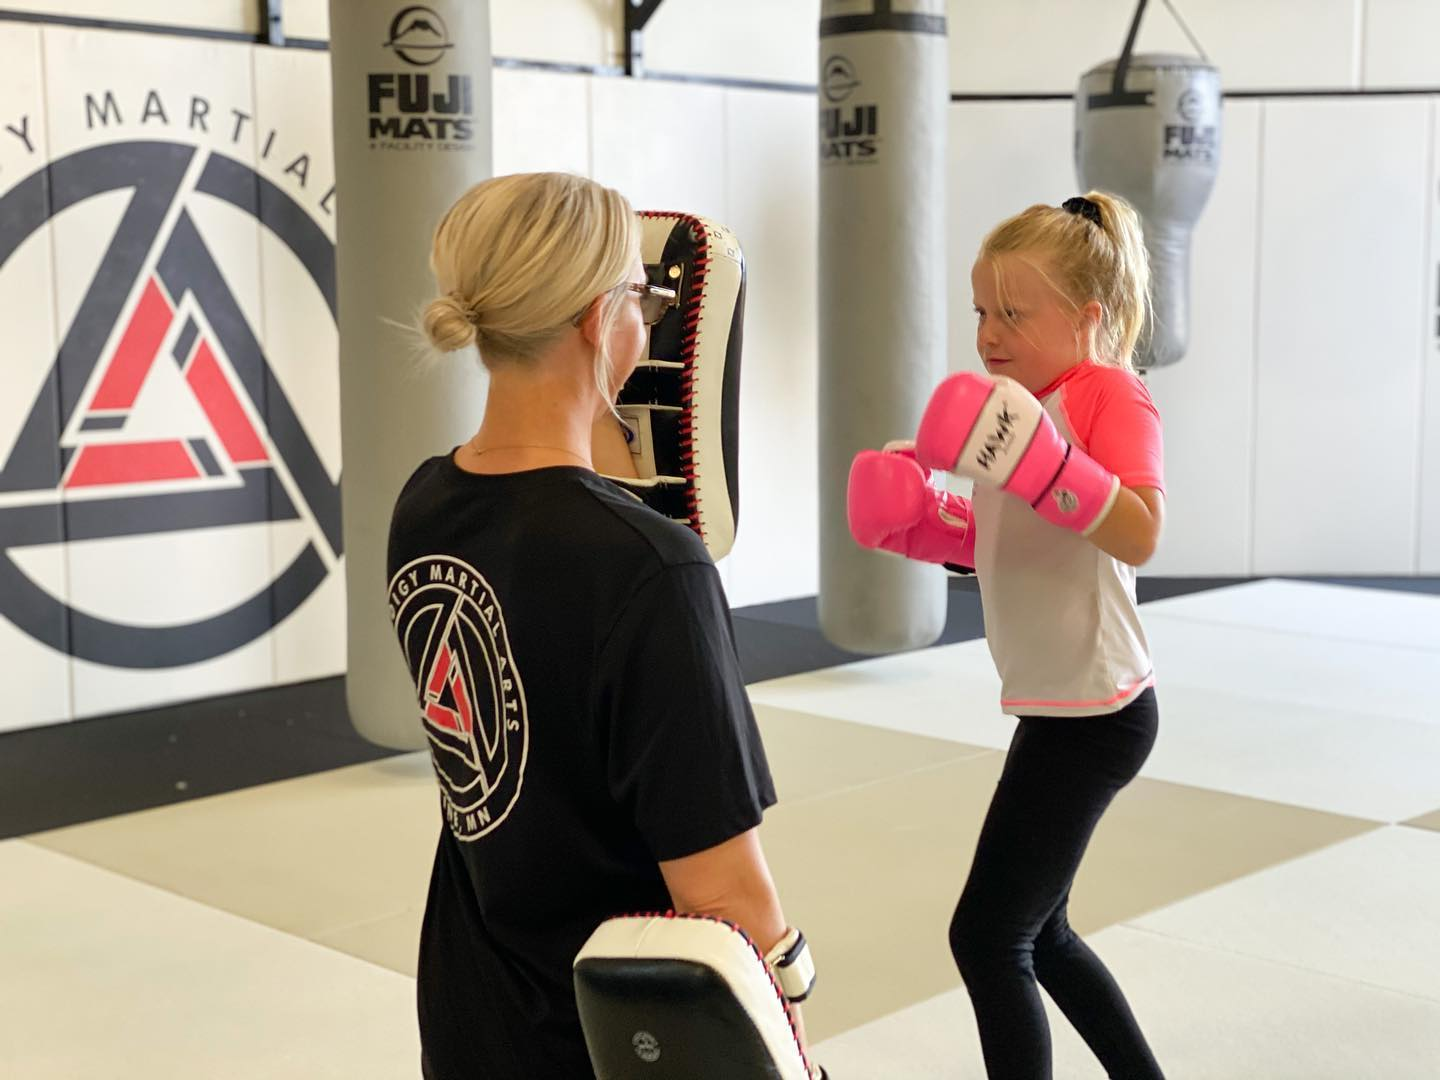 Young girl doing kids martial arts